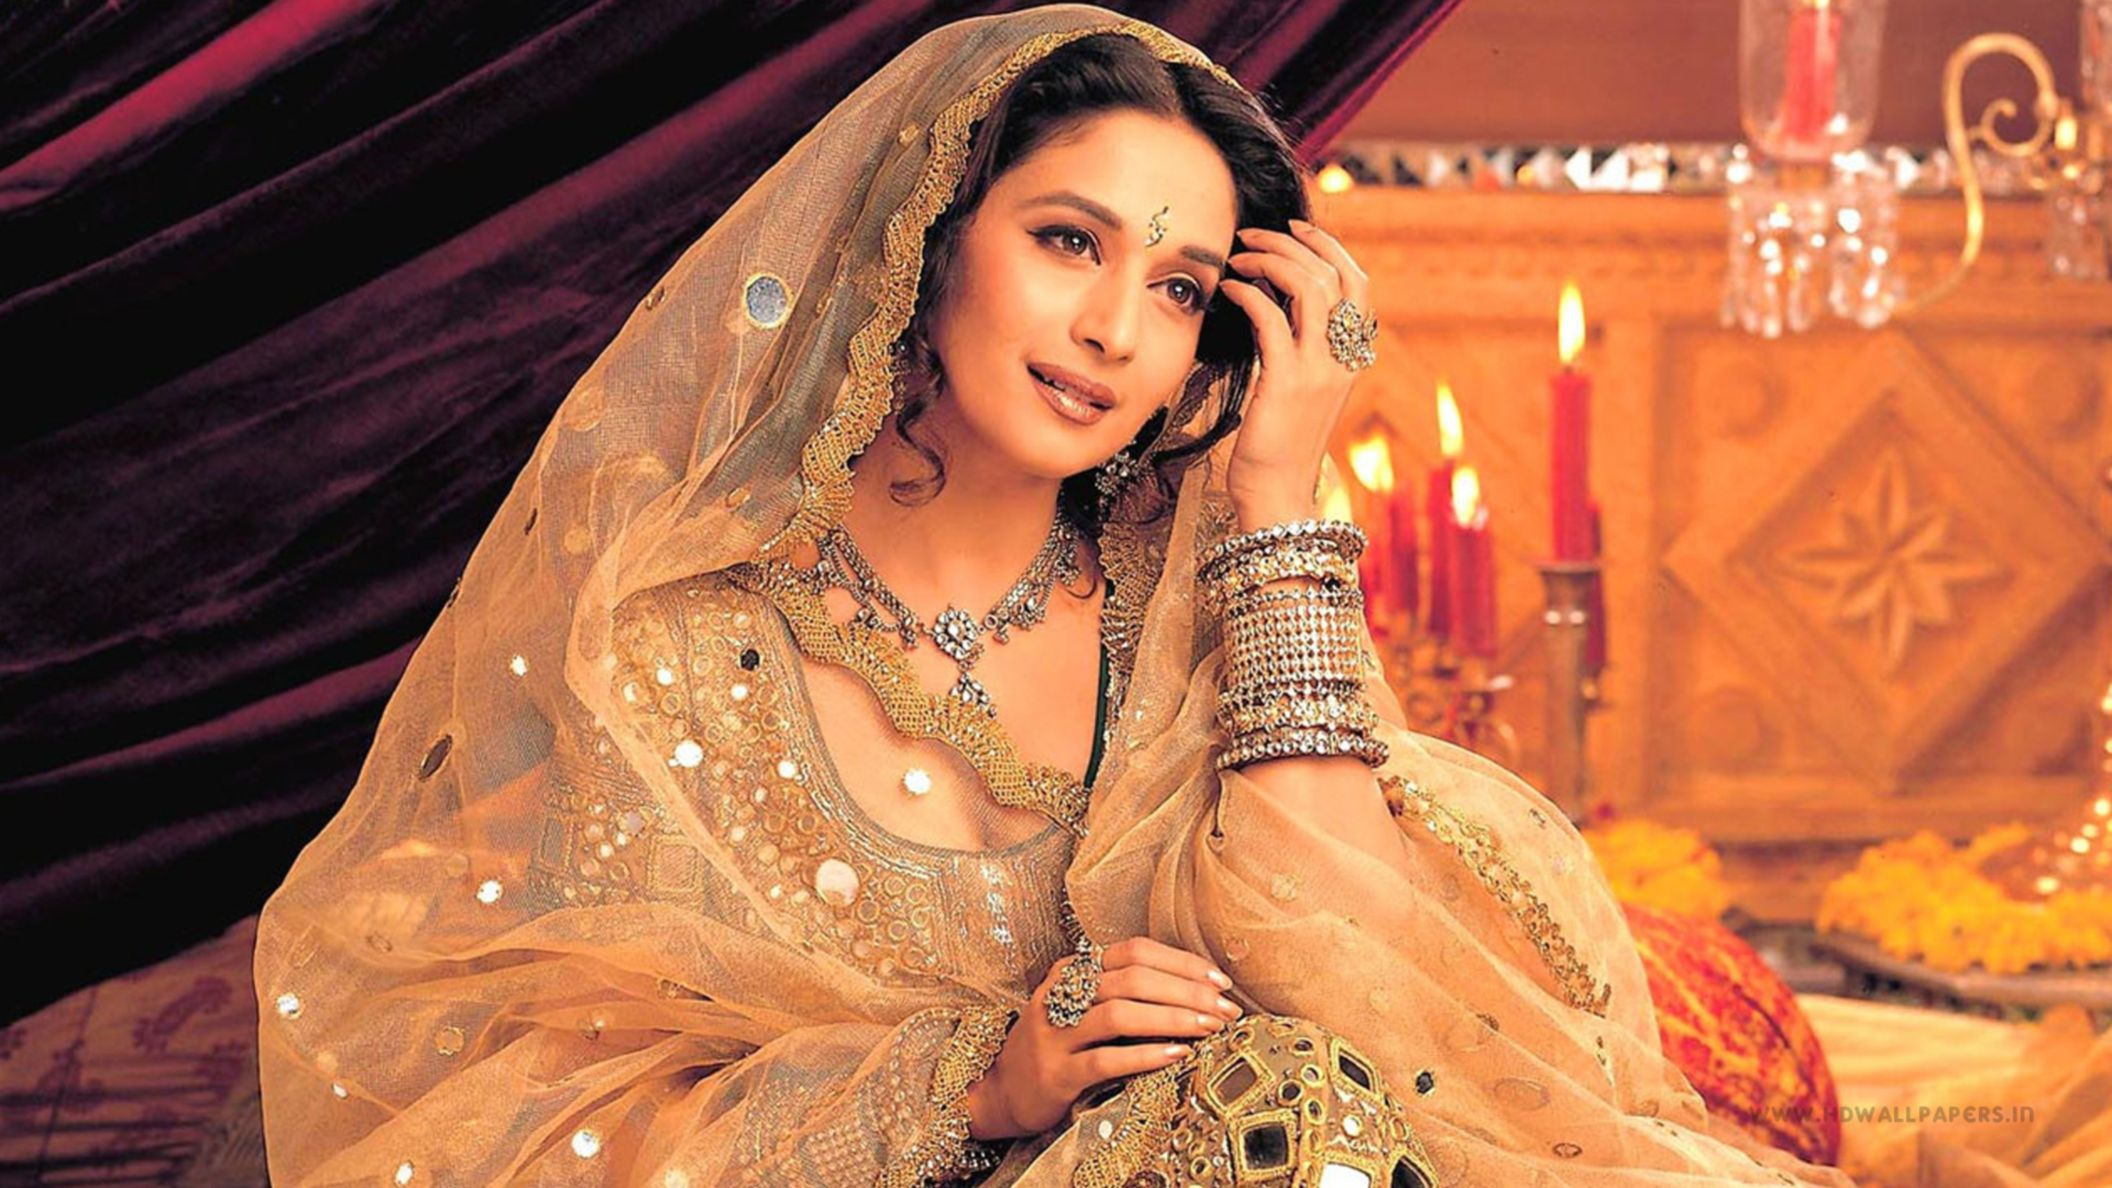 Download free HD Madhuri Dixit Devdas HD Wallpaper, image